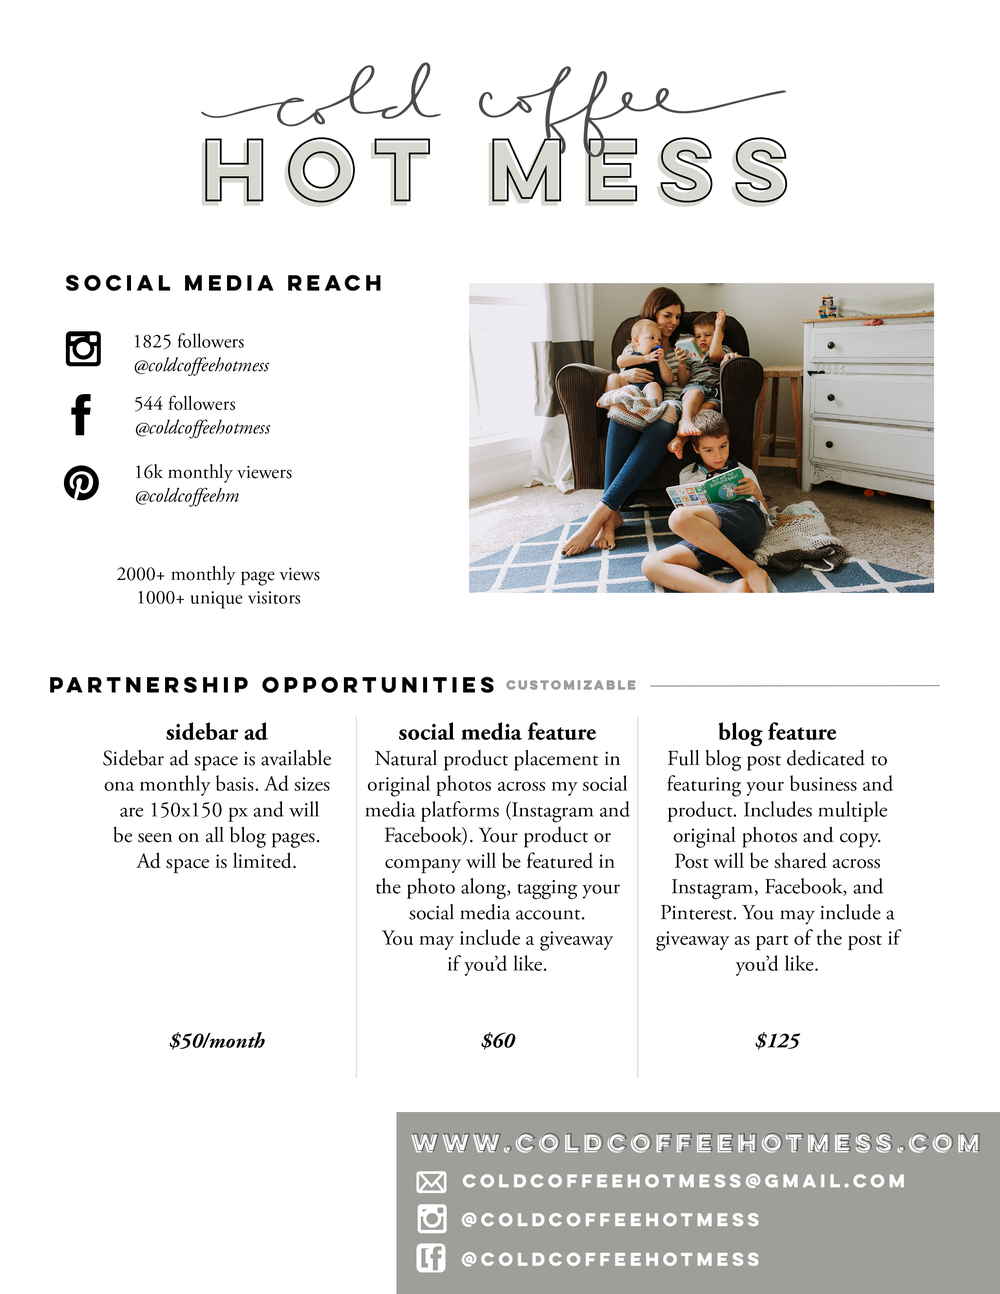 CCHM-Media-Kit-page2.png